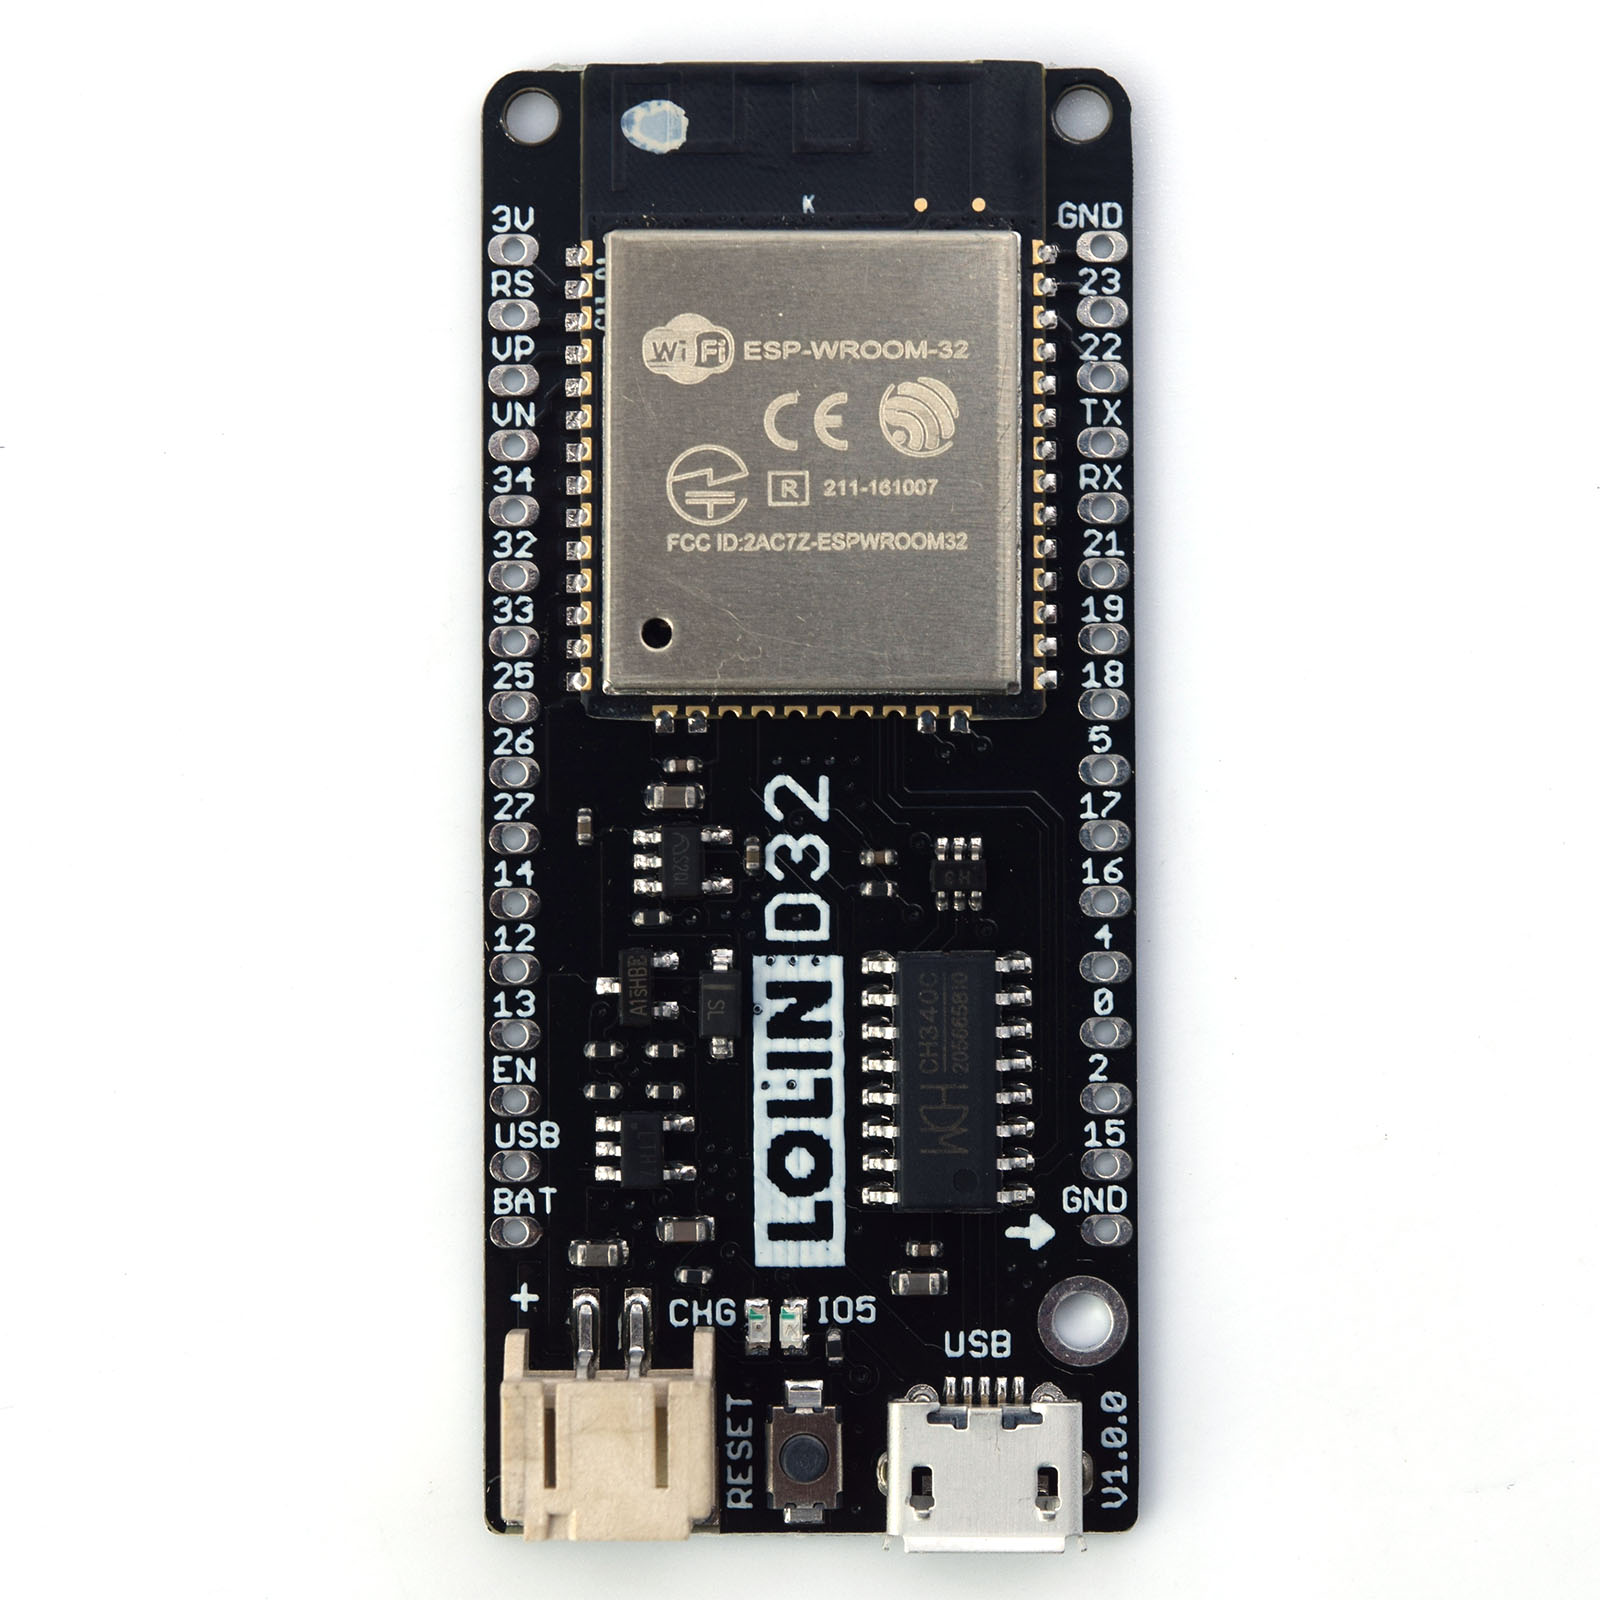 LOLIN D32 V1.0.0 - wifi & bluetooth board based ESP-32 esp32 ESP-WROOM-32 4MB FLASH Arduino MicroPython Compatible